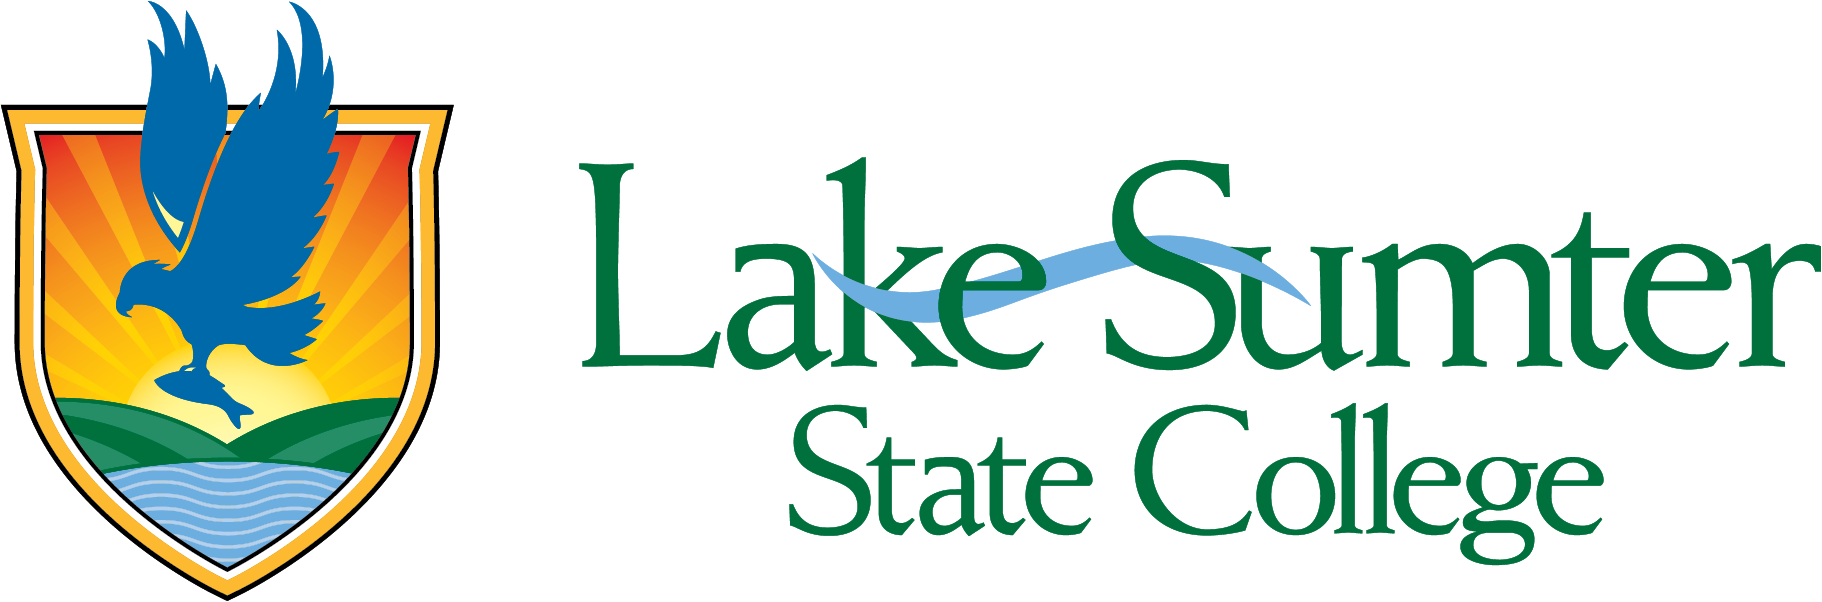 Home - Lake-Sumter State College